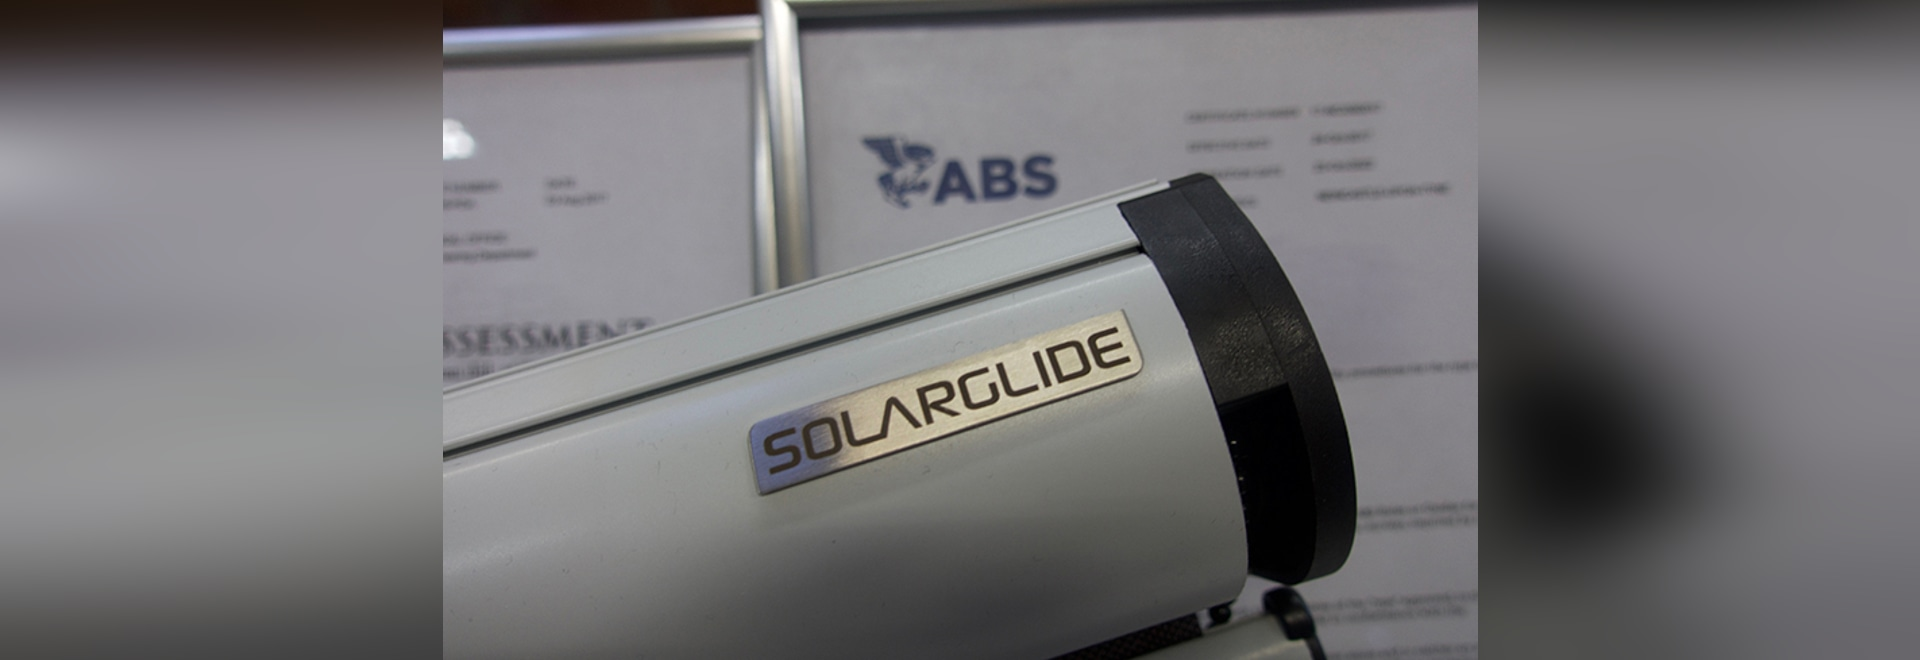 SOLARGLIDE ANNOUNCES ABS TYPE APPROVAL FOR SG GLIDER SOLAR SCREENS